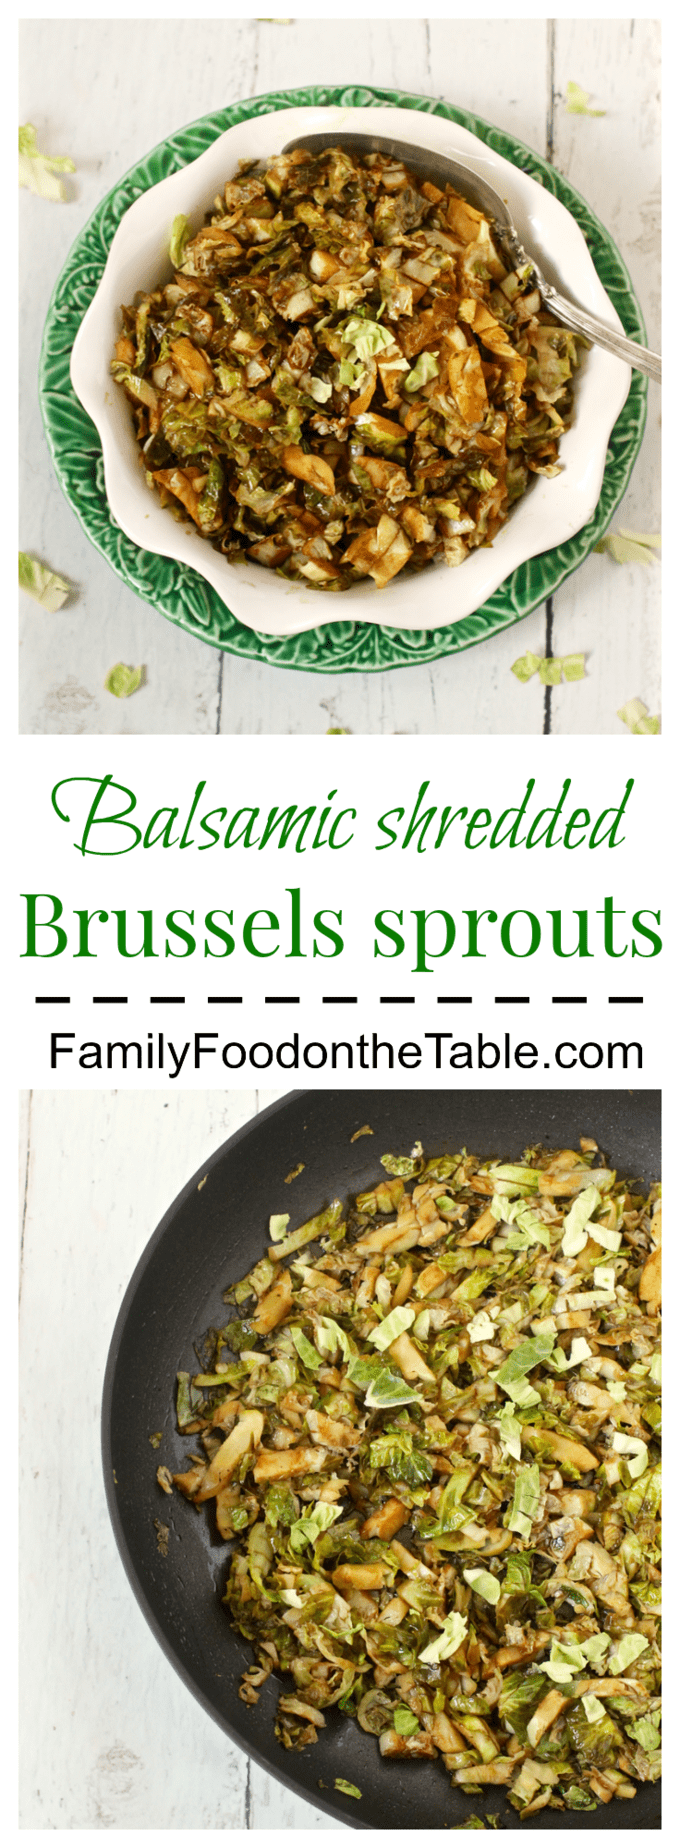 Easy balsamic shredded Brussels sprouts make a great 10-minute veggie side! | FamilyFoodontheTable.com